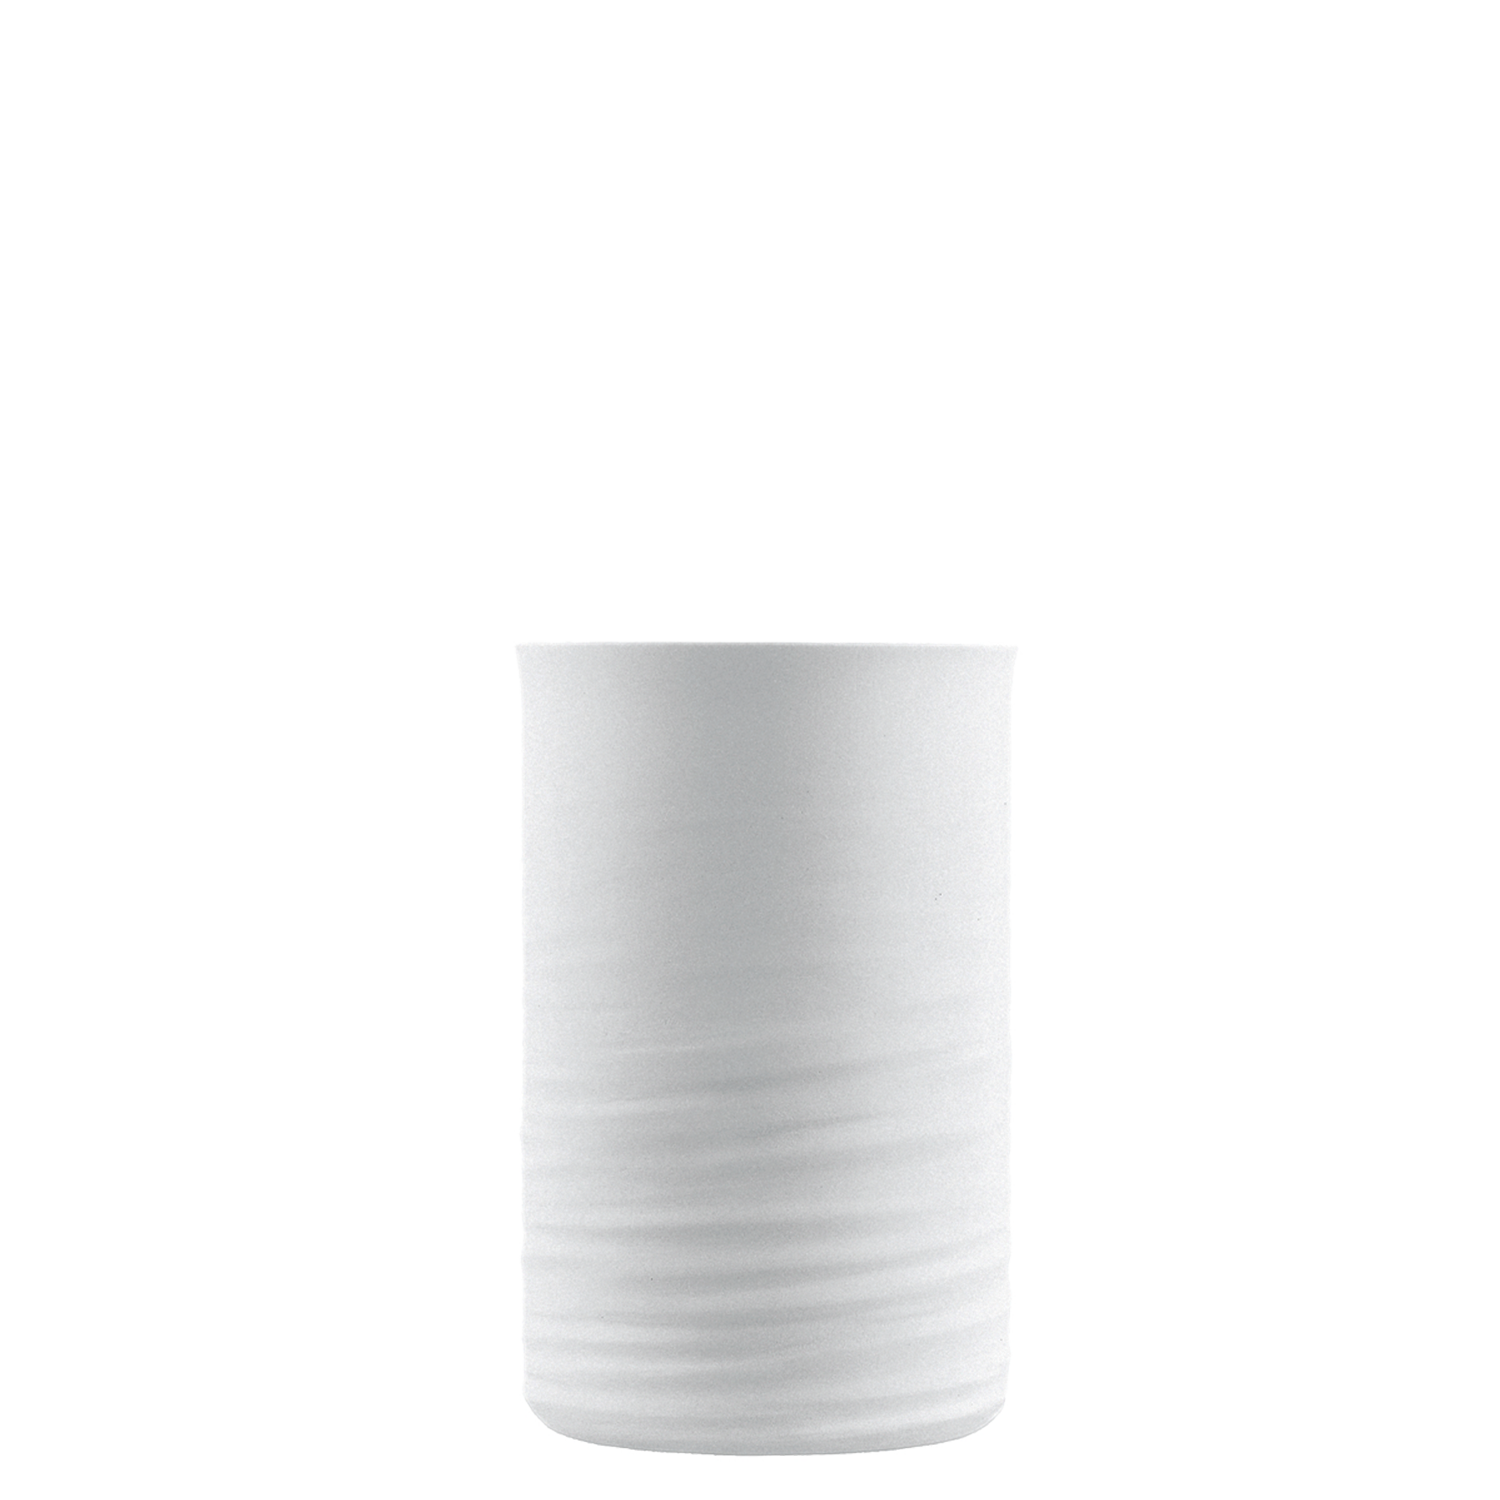 Mug double-walled (relief wave)